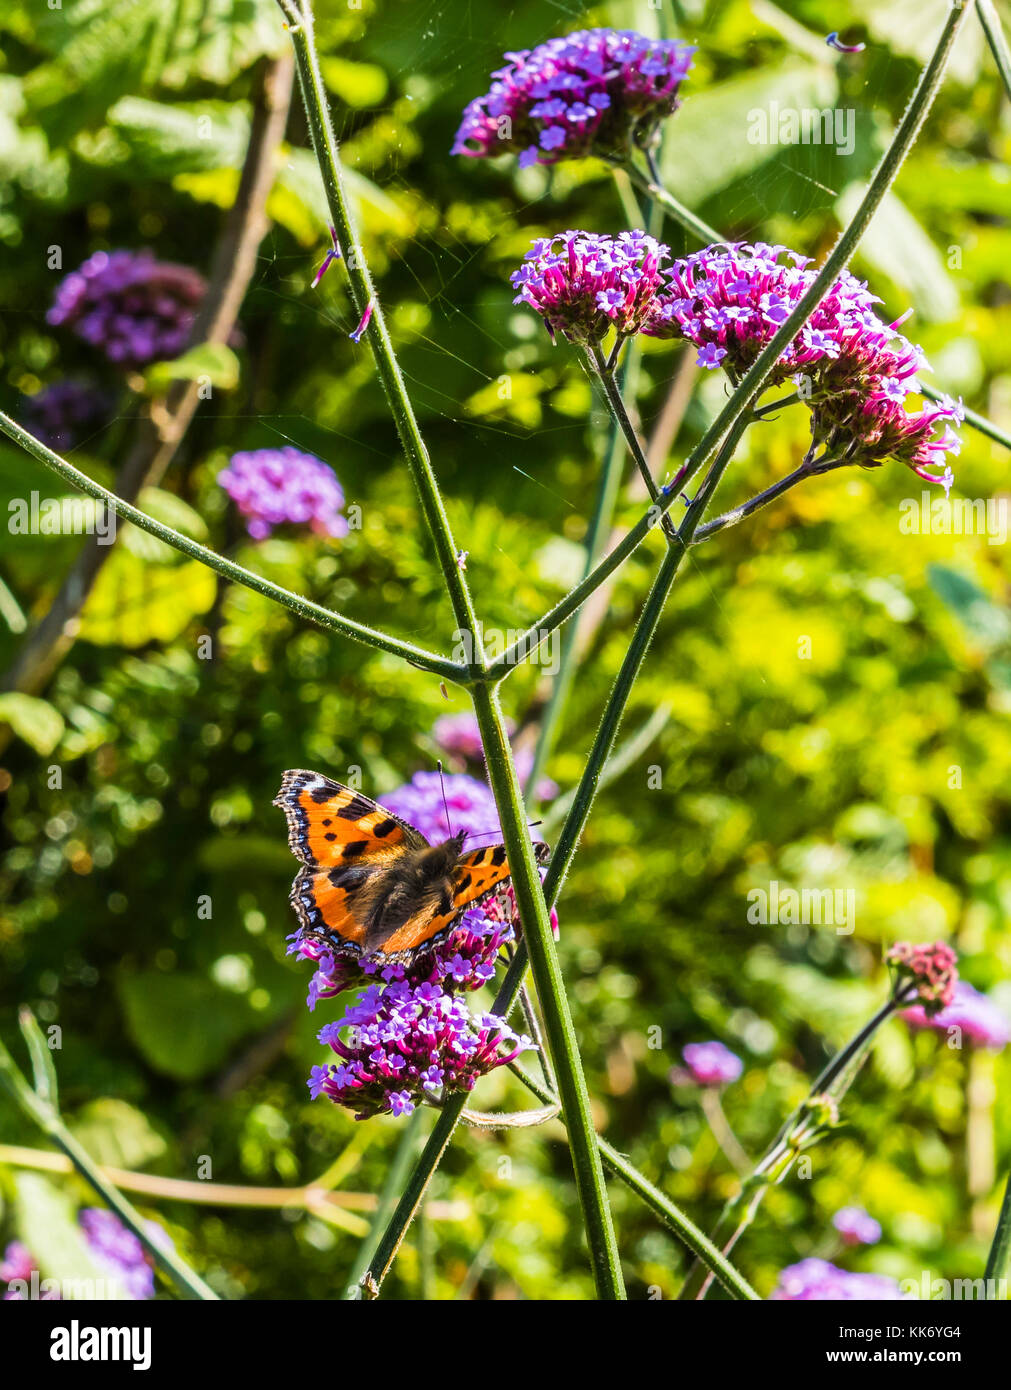 Small tortoiseshell butterfly in a Buckinghamshire garden, UK - Stock Image